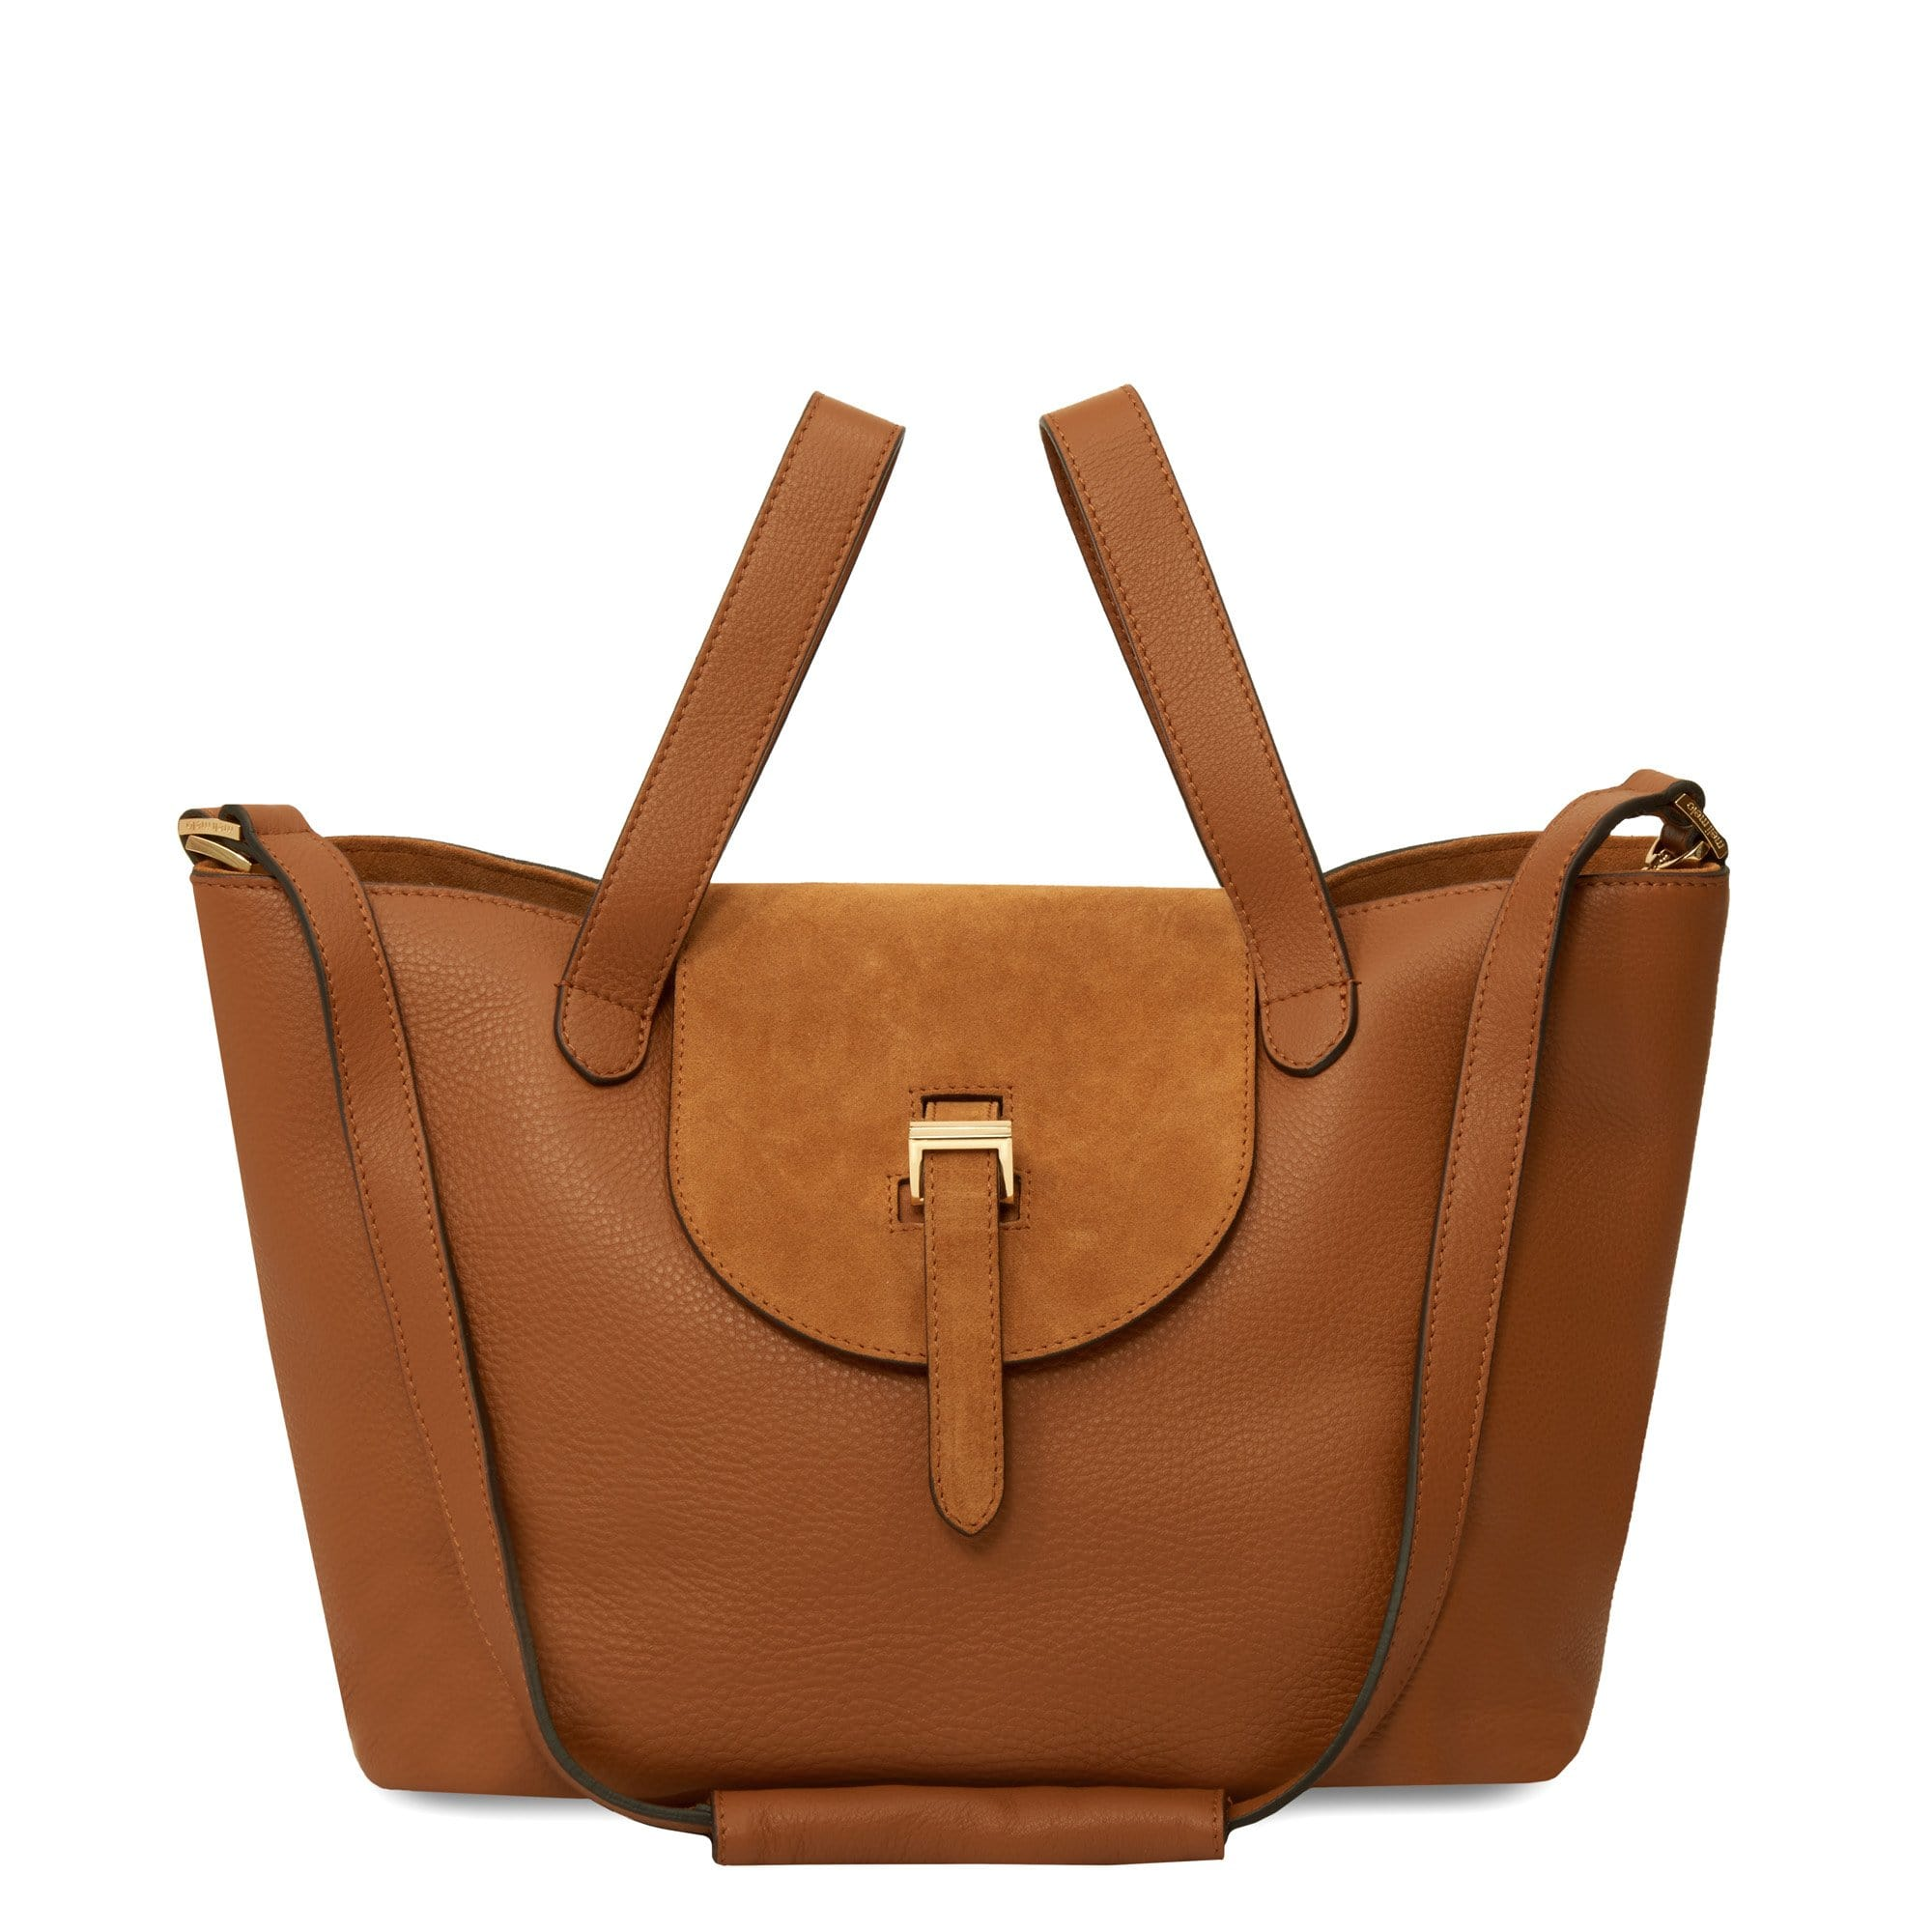 Thela Medium Classic Tan & Caramel Suede Pop - meli melo Official